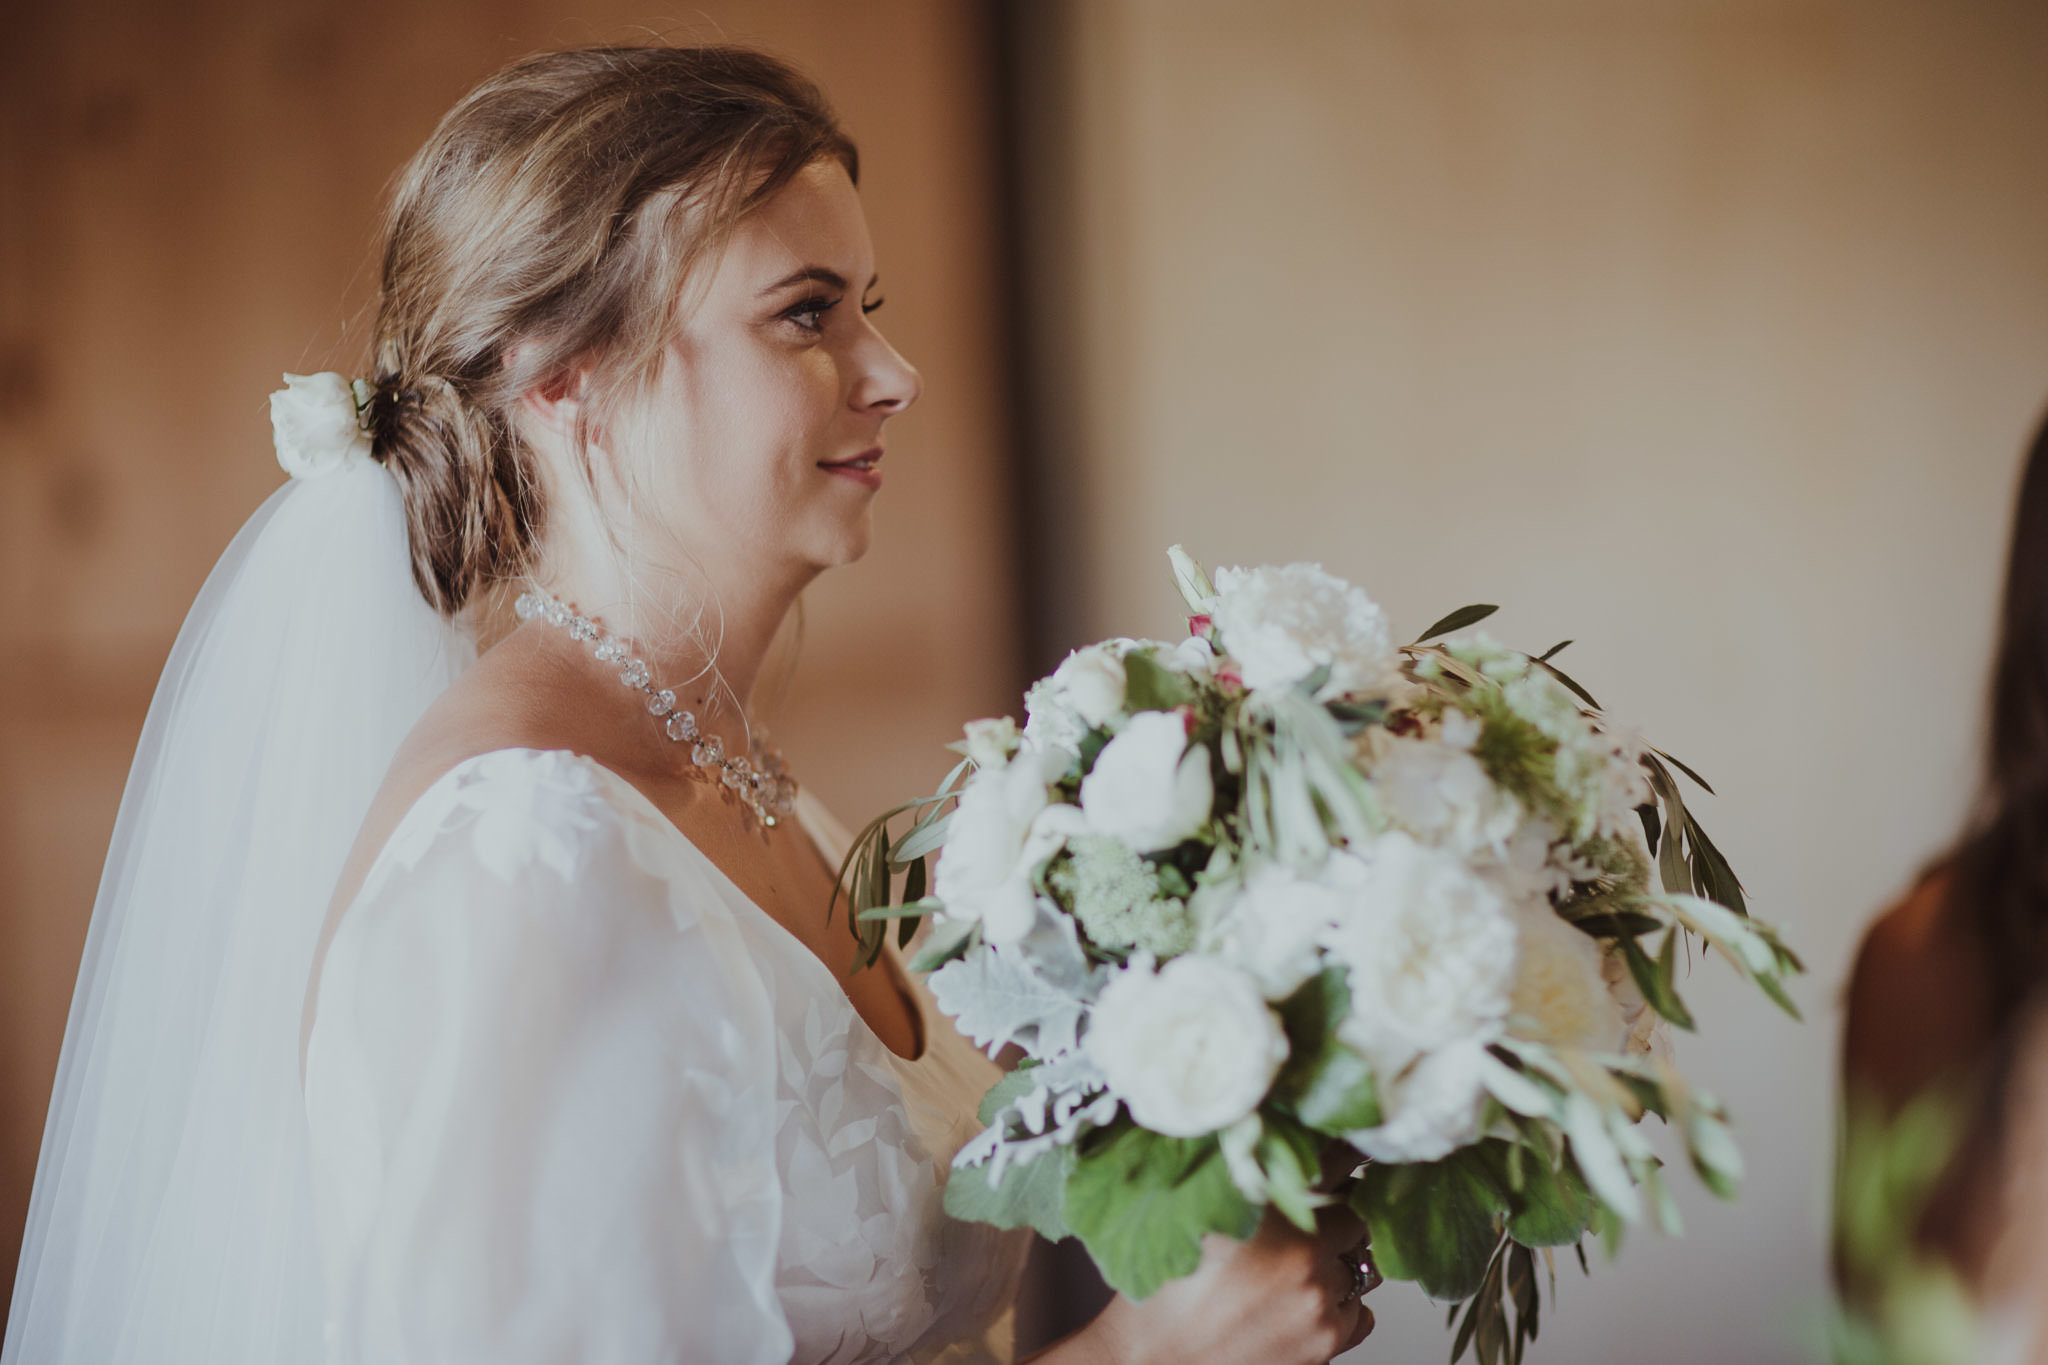 20180310_Wedding-Family-Event-Wollongong-SouthCoast-Photographer_BearHuntPhotography_550.jpg